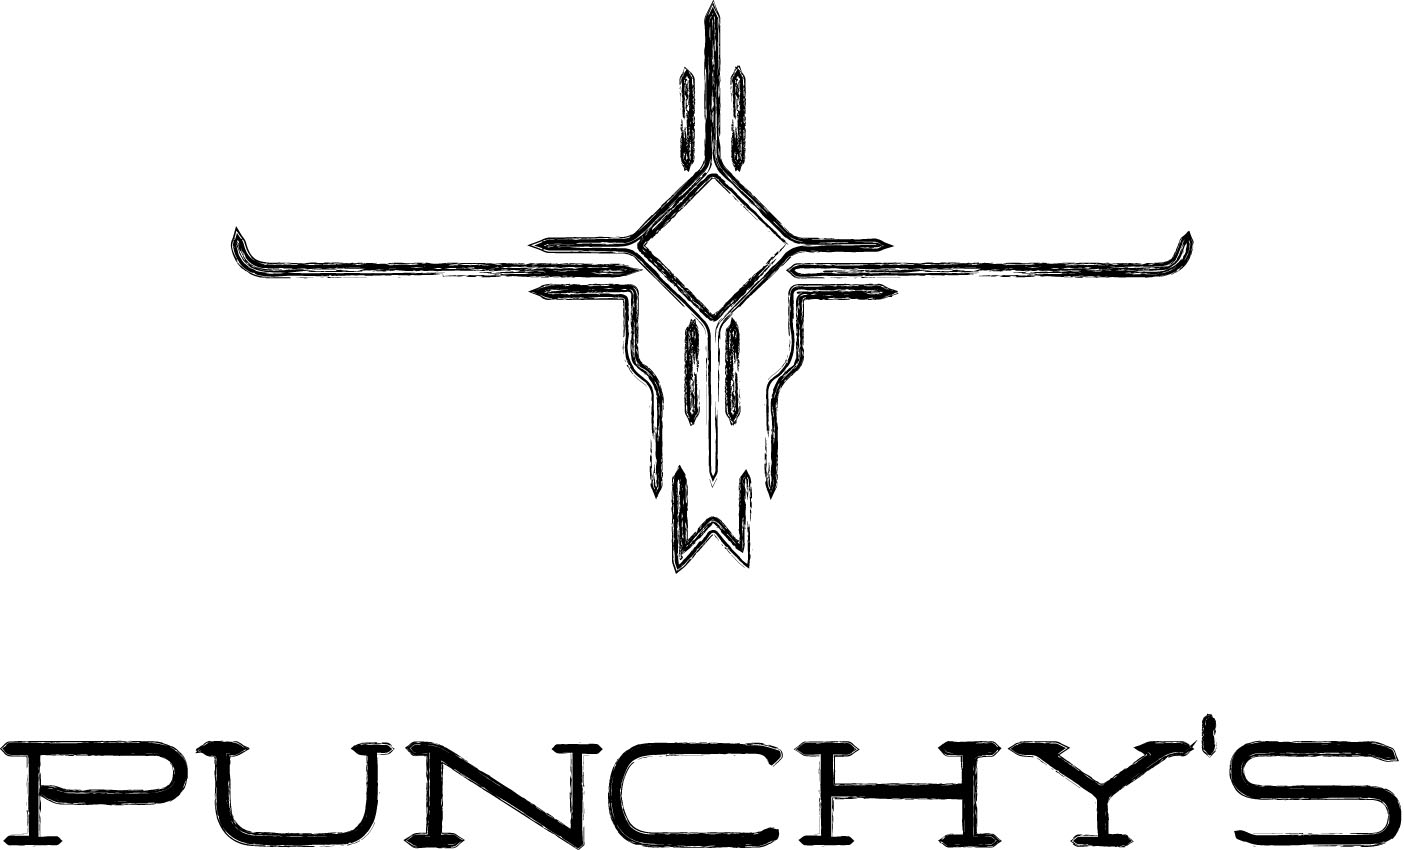 PUNCHY'S Clothing, Apparel and Jewelry